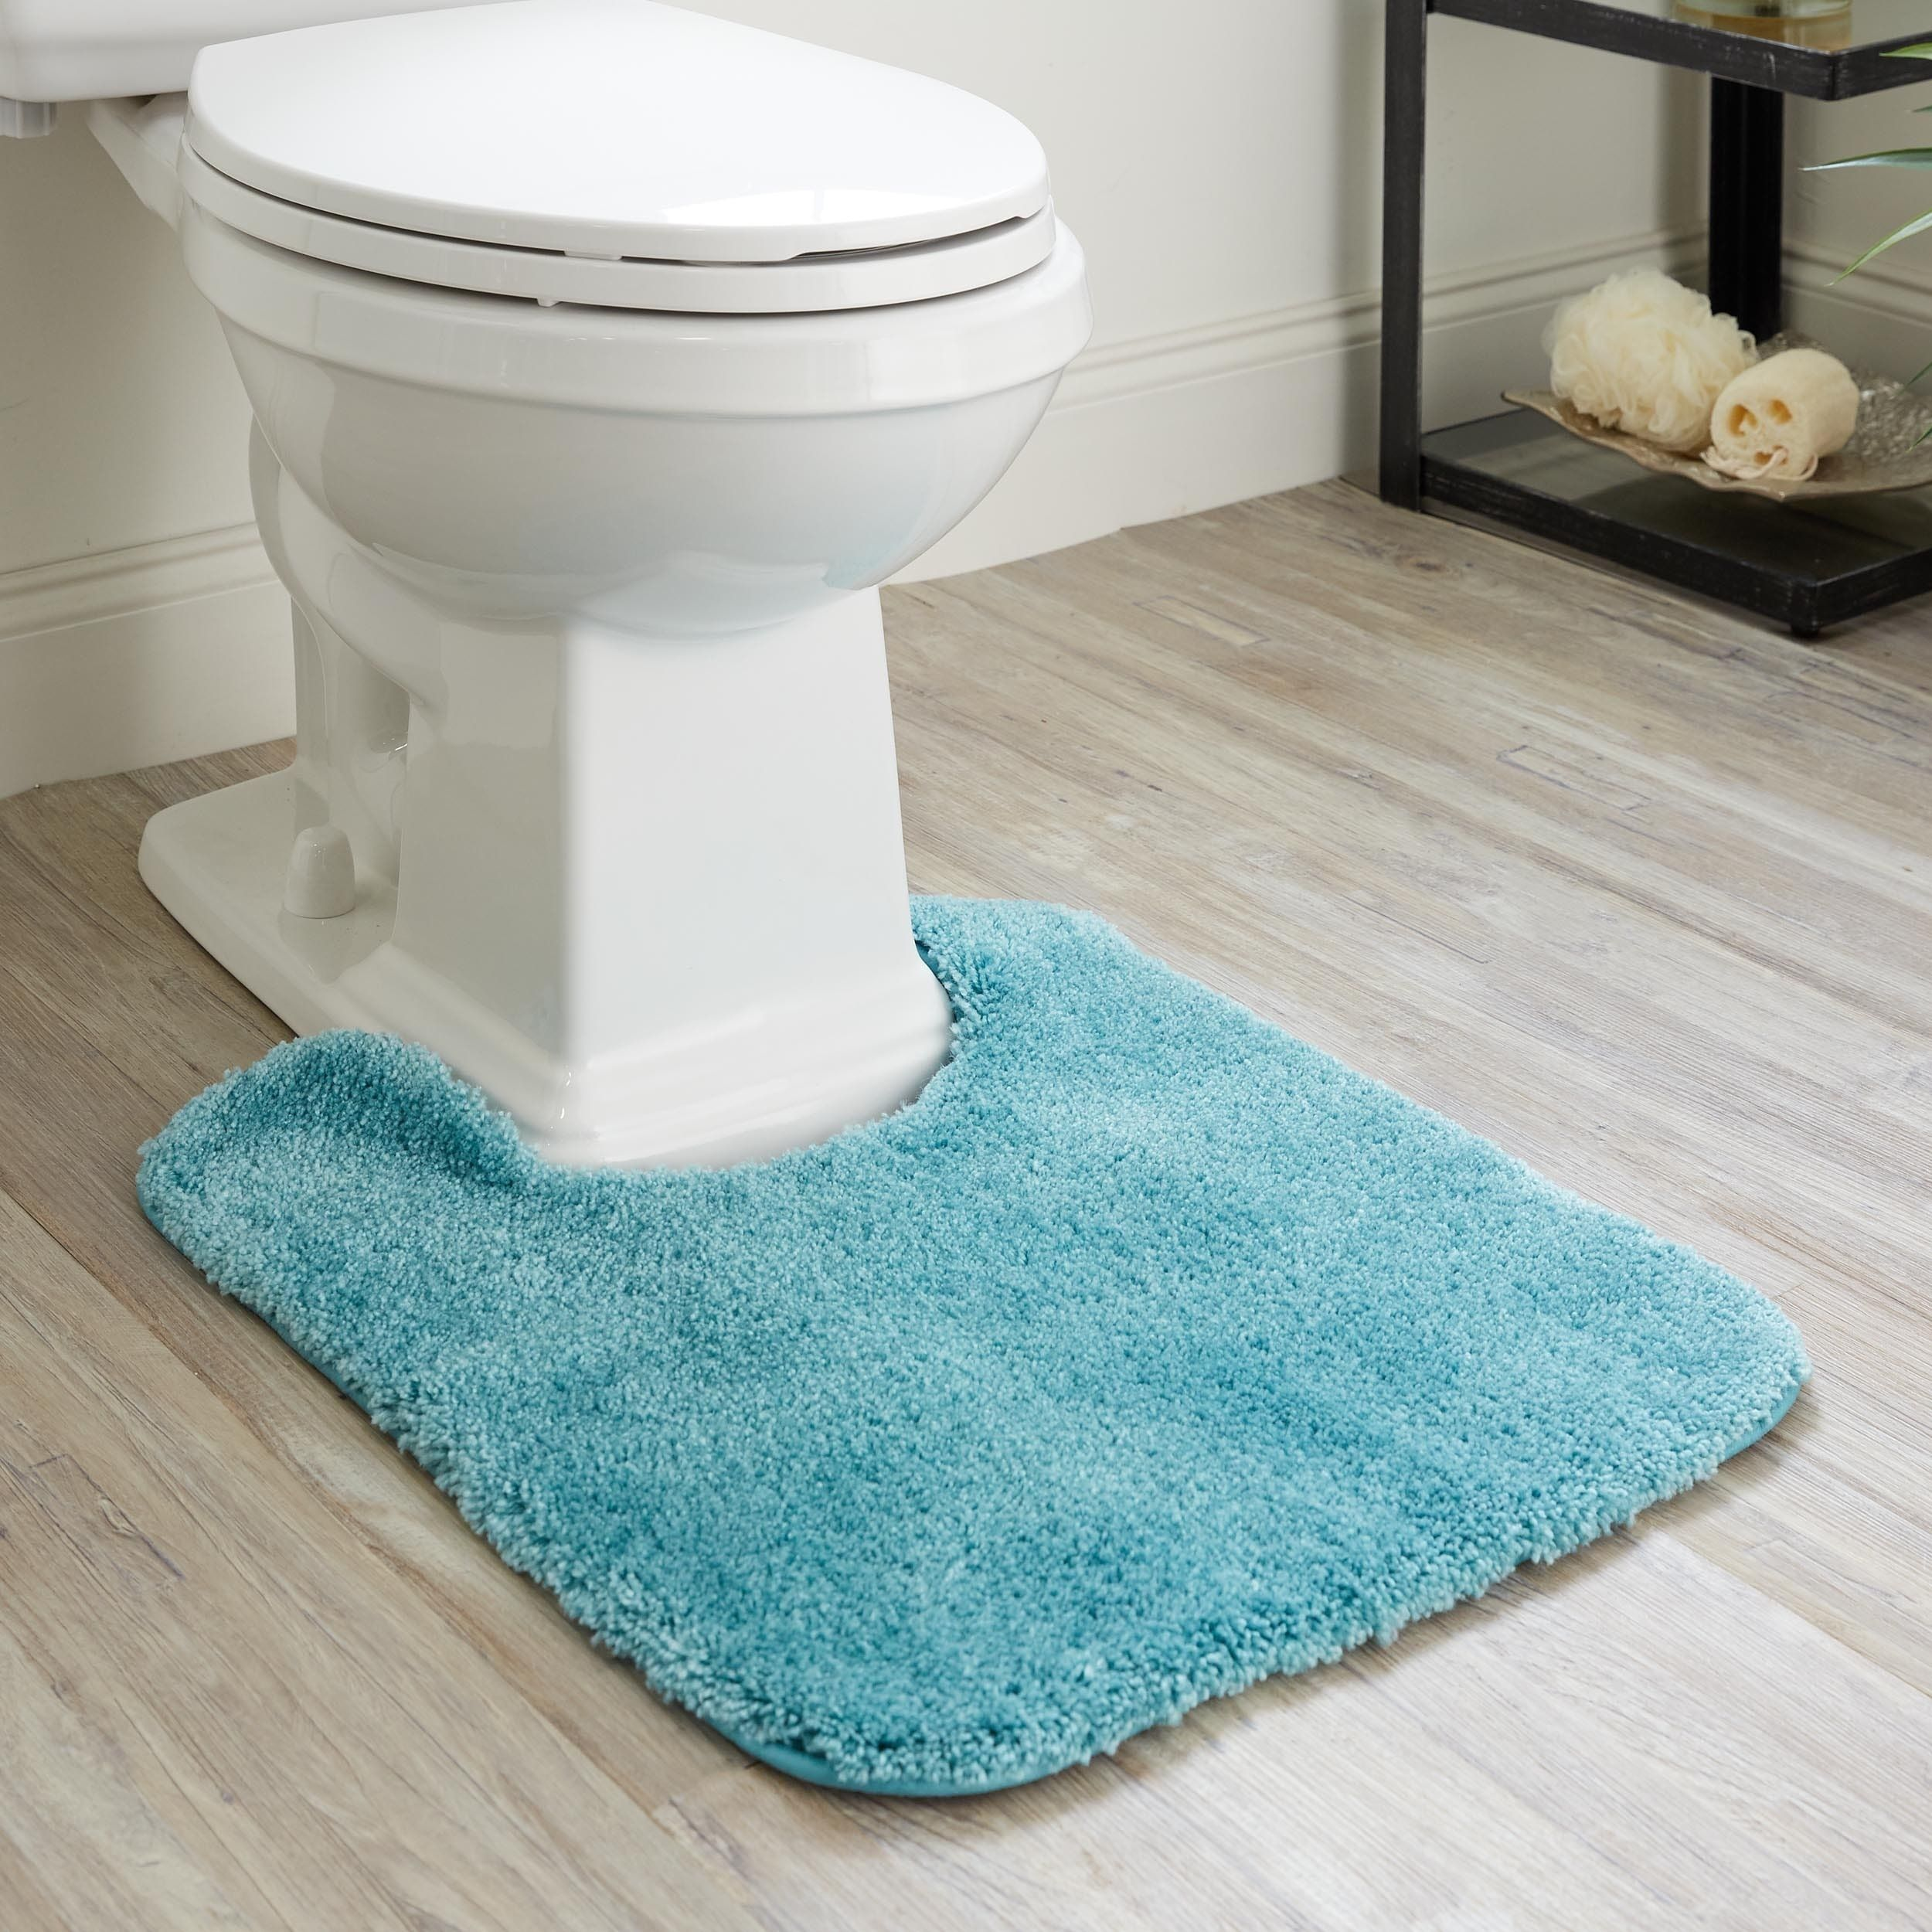 Mohawk Home Bath Rug (1\'8x2\' Contour) by Mohawk Home   Products ...